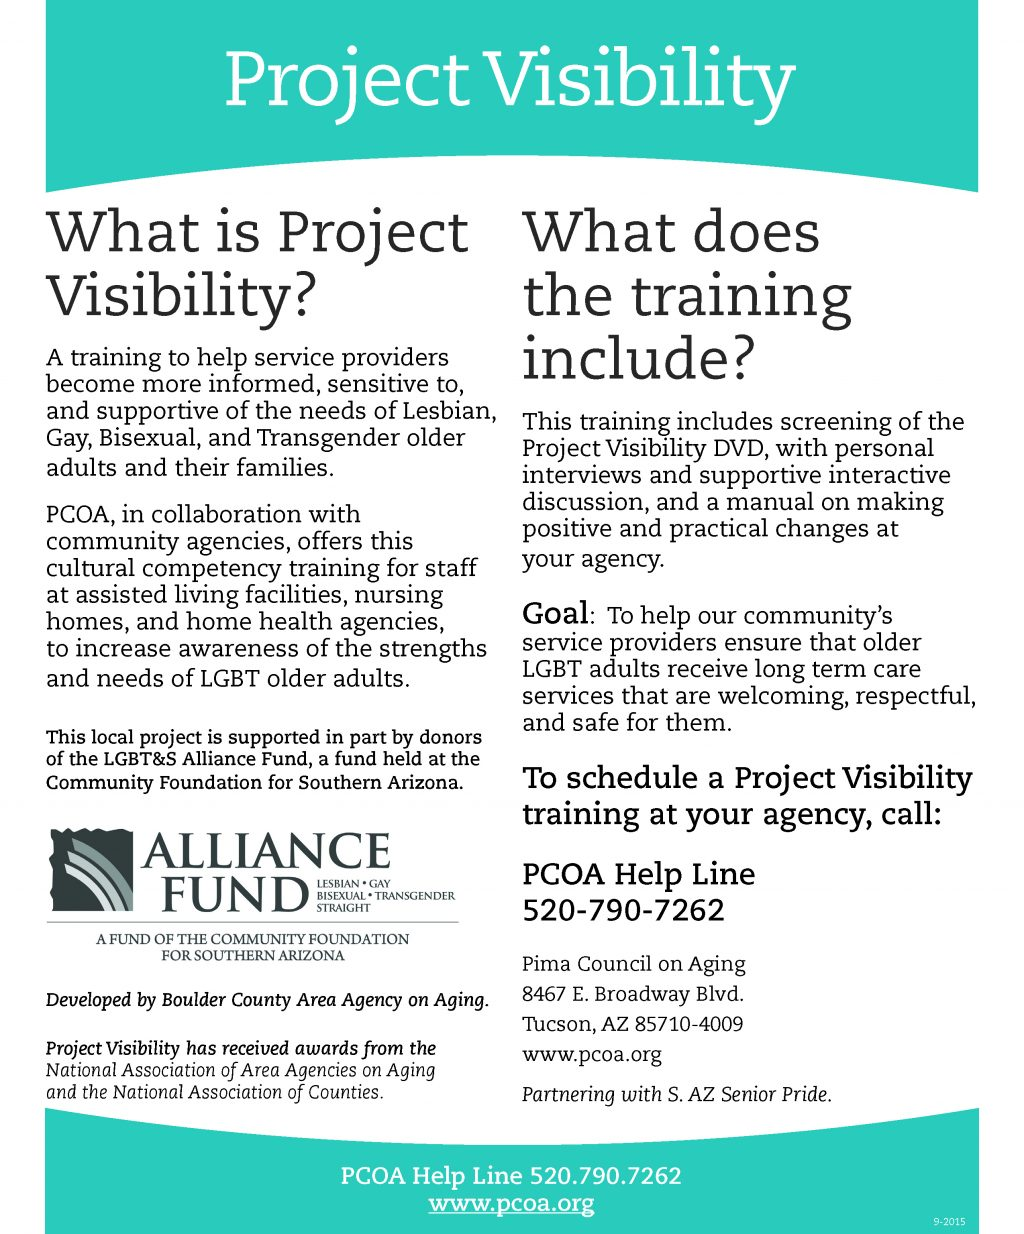 Project Visability Flyer 2016 jpg.jpg